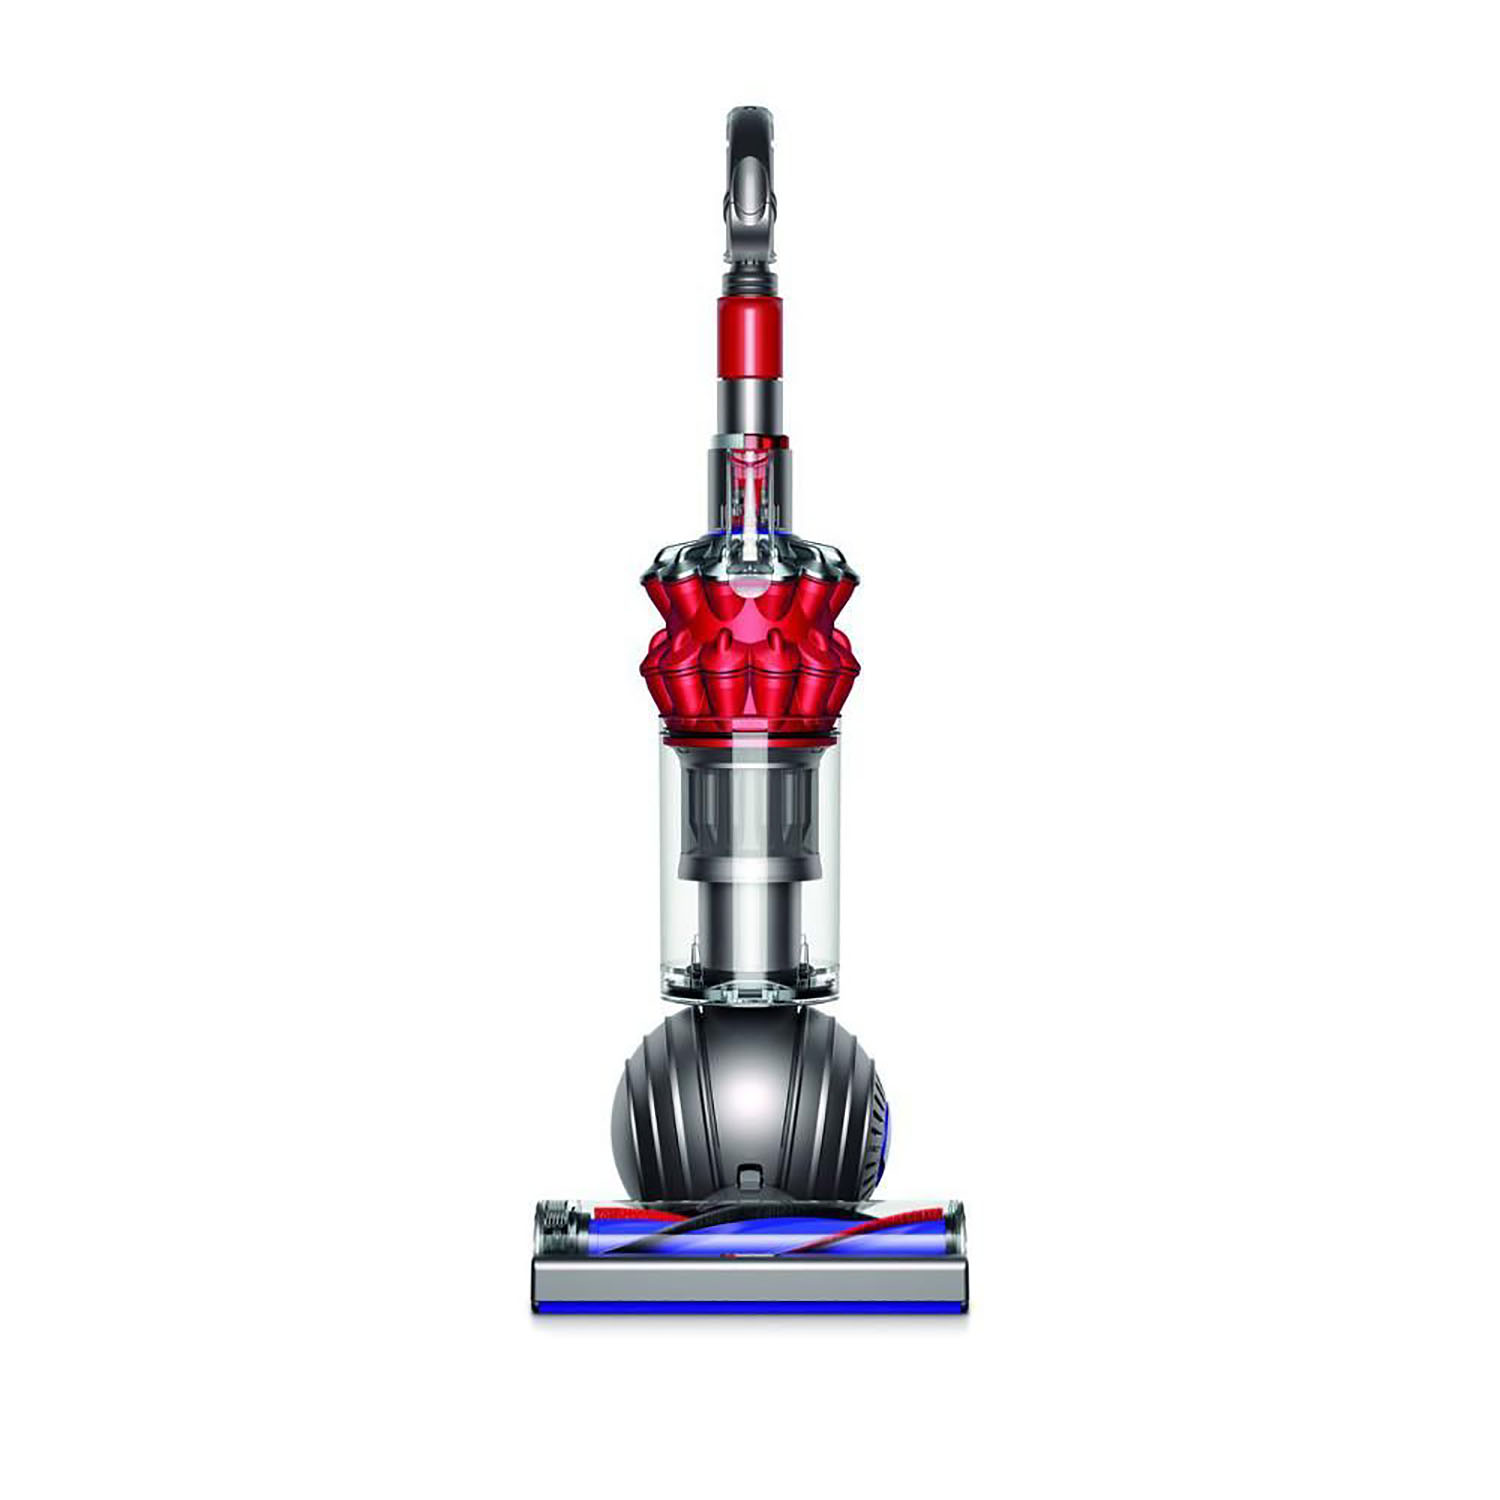 Dyson Small Ball Total Clean Upright Vacuum Cleaner